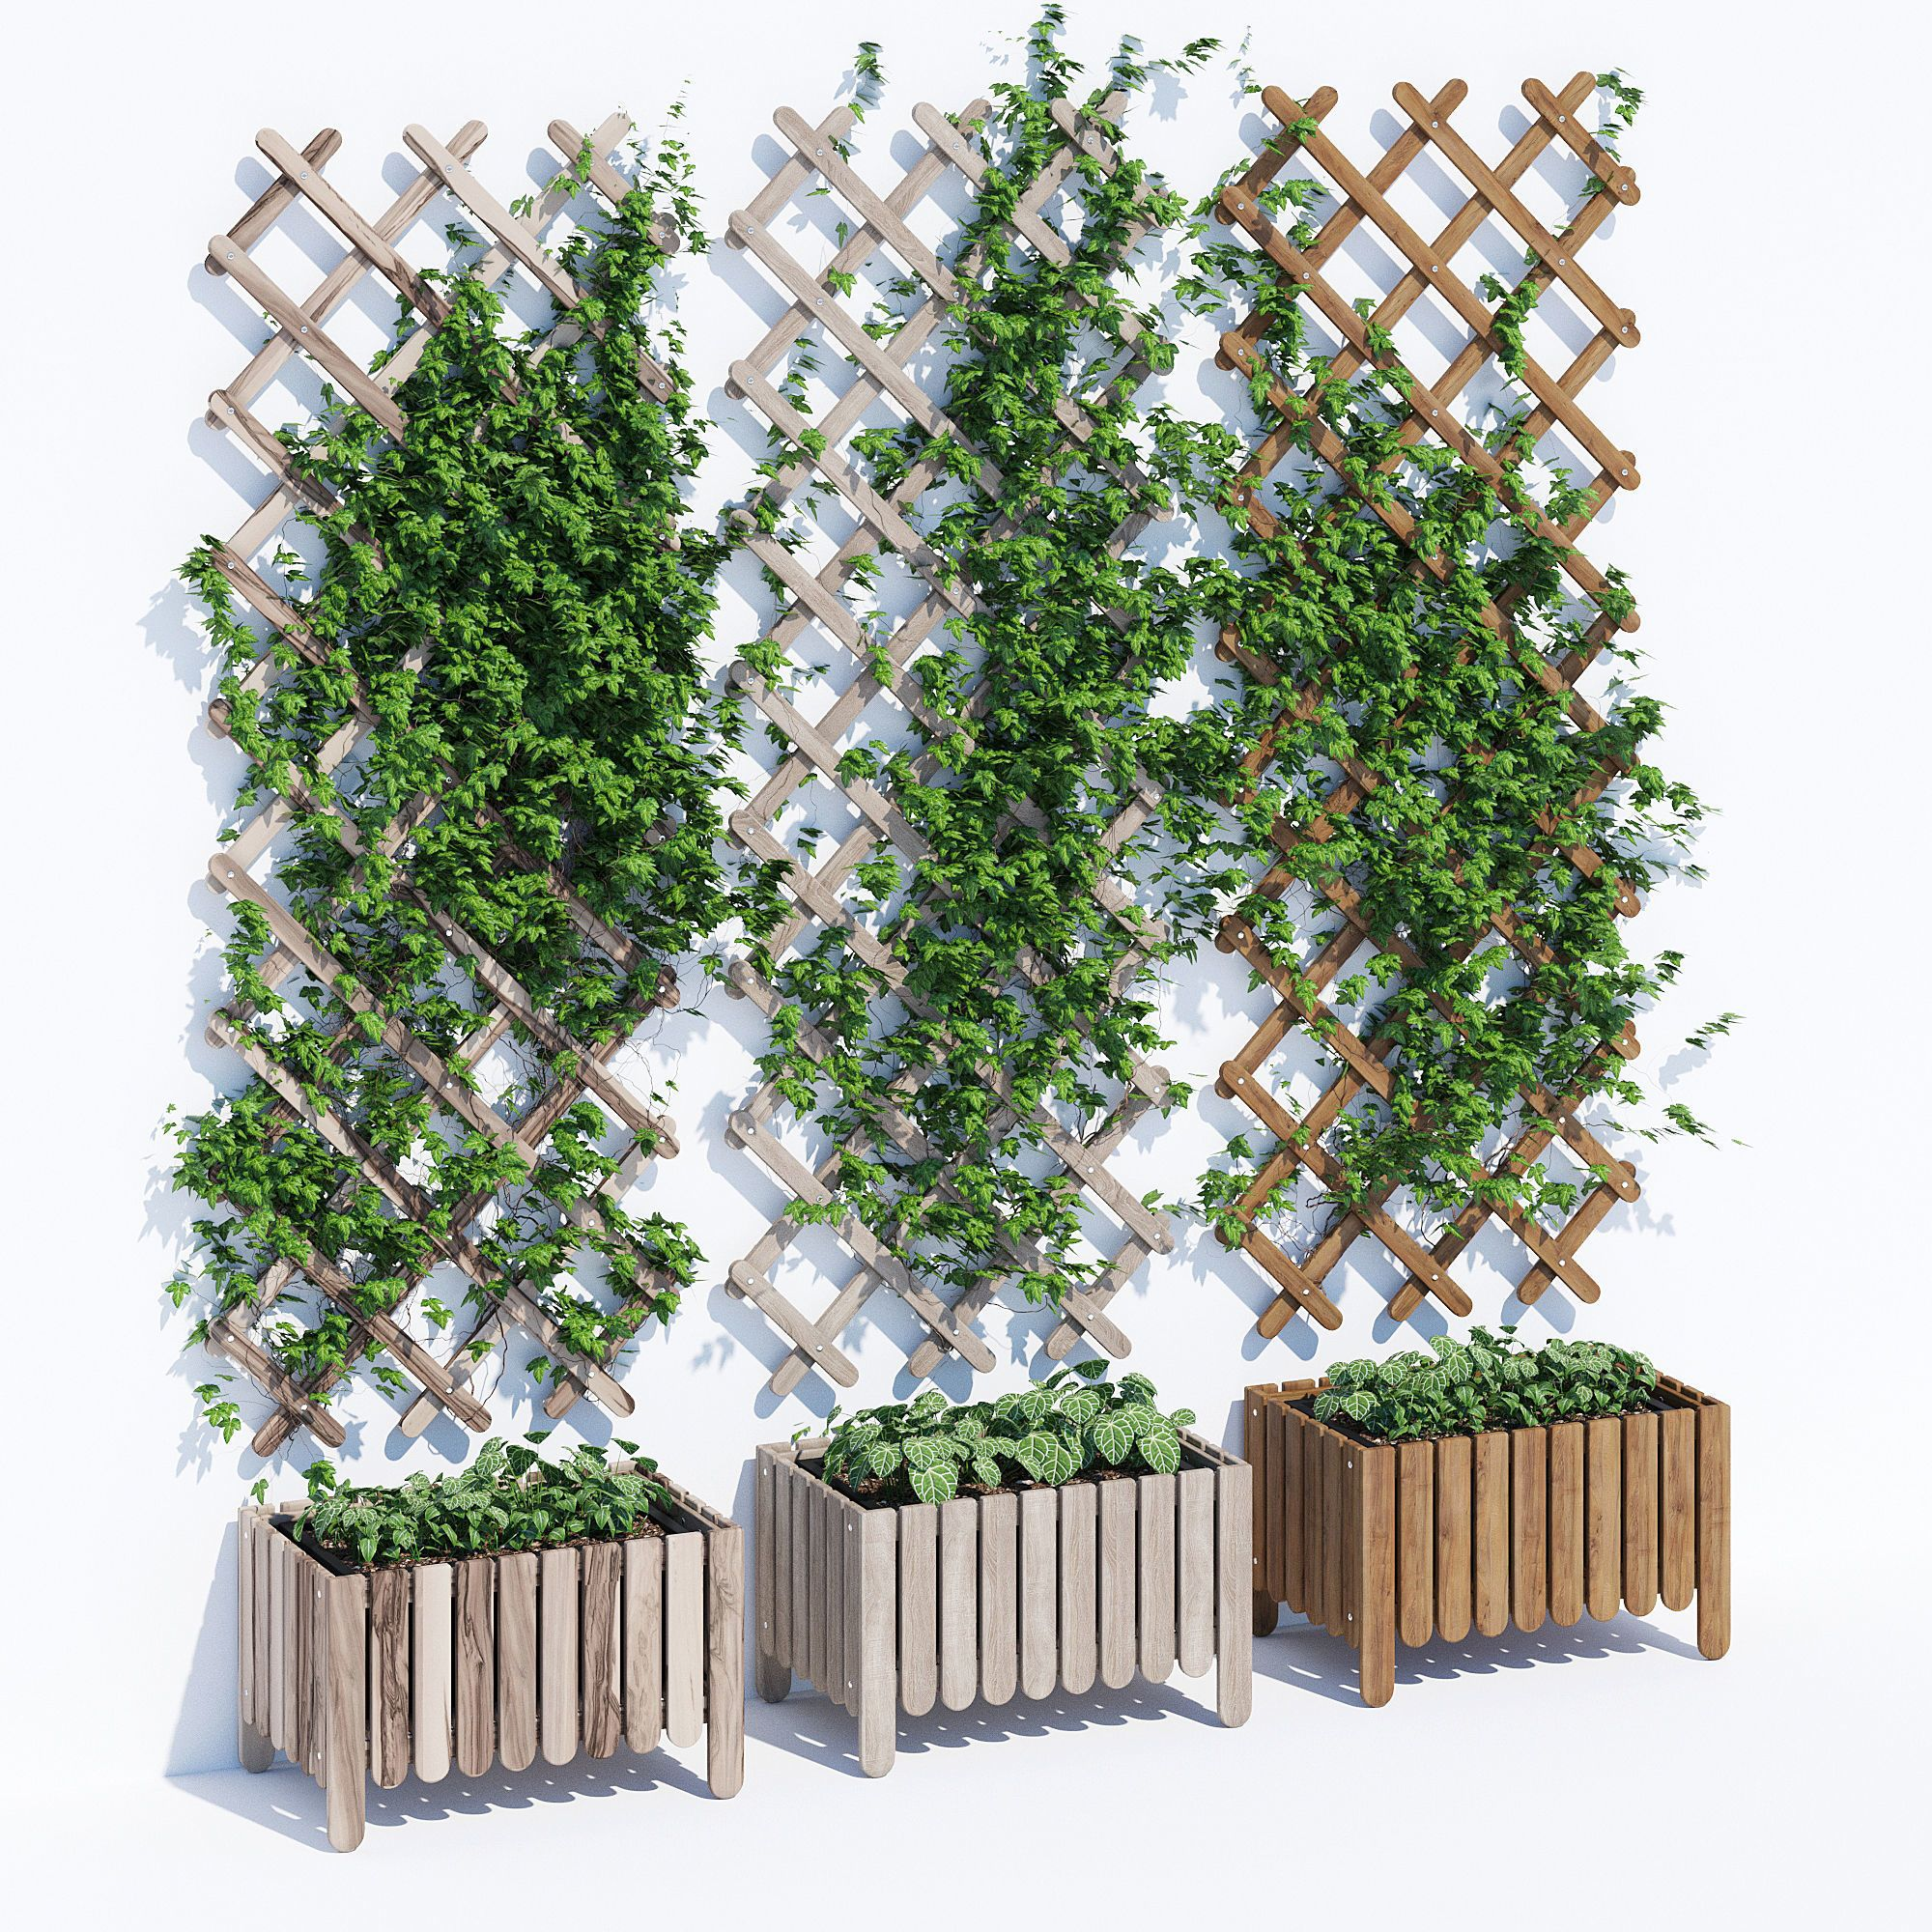 Askholmen  9D model  Plant stands outdoor, Vertical garden